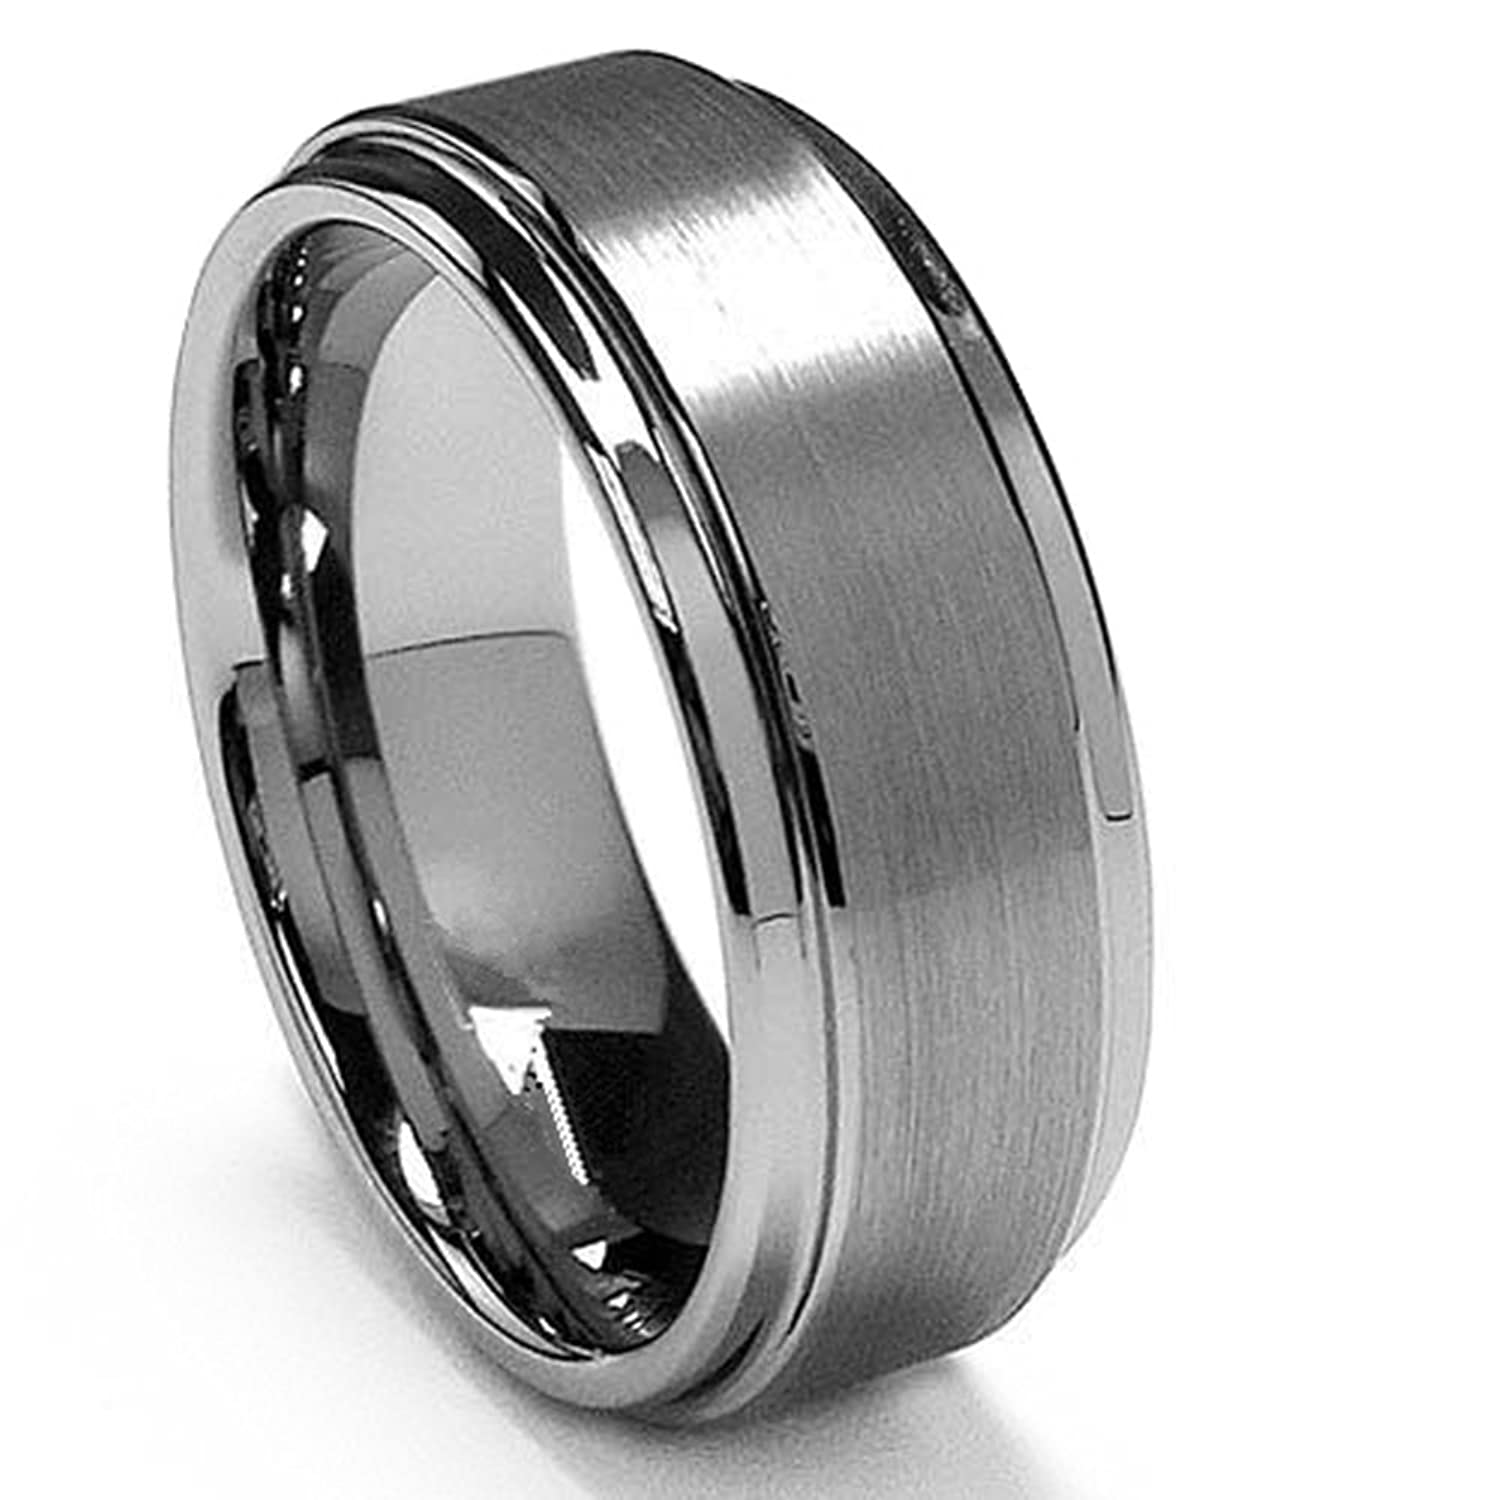 King Will BASIC 8mm White Tungsten Ring Wedding Band Step Edge